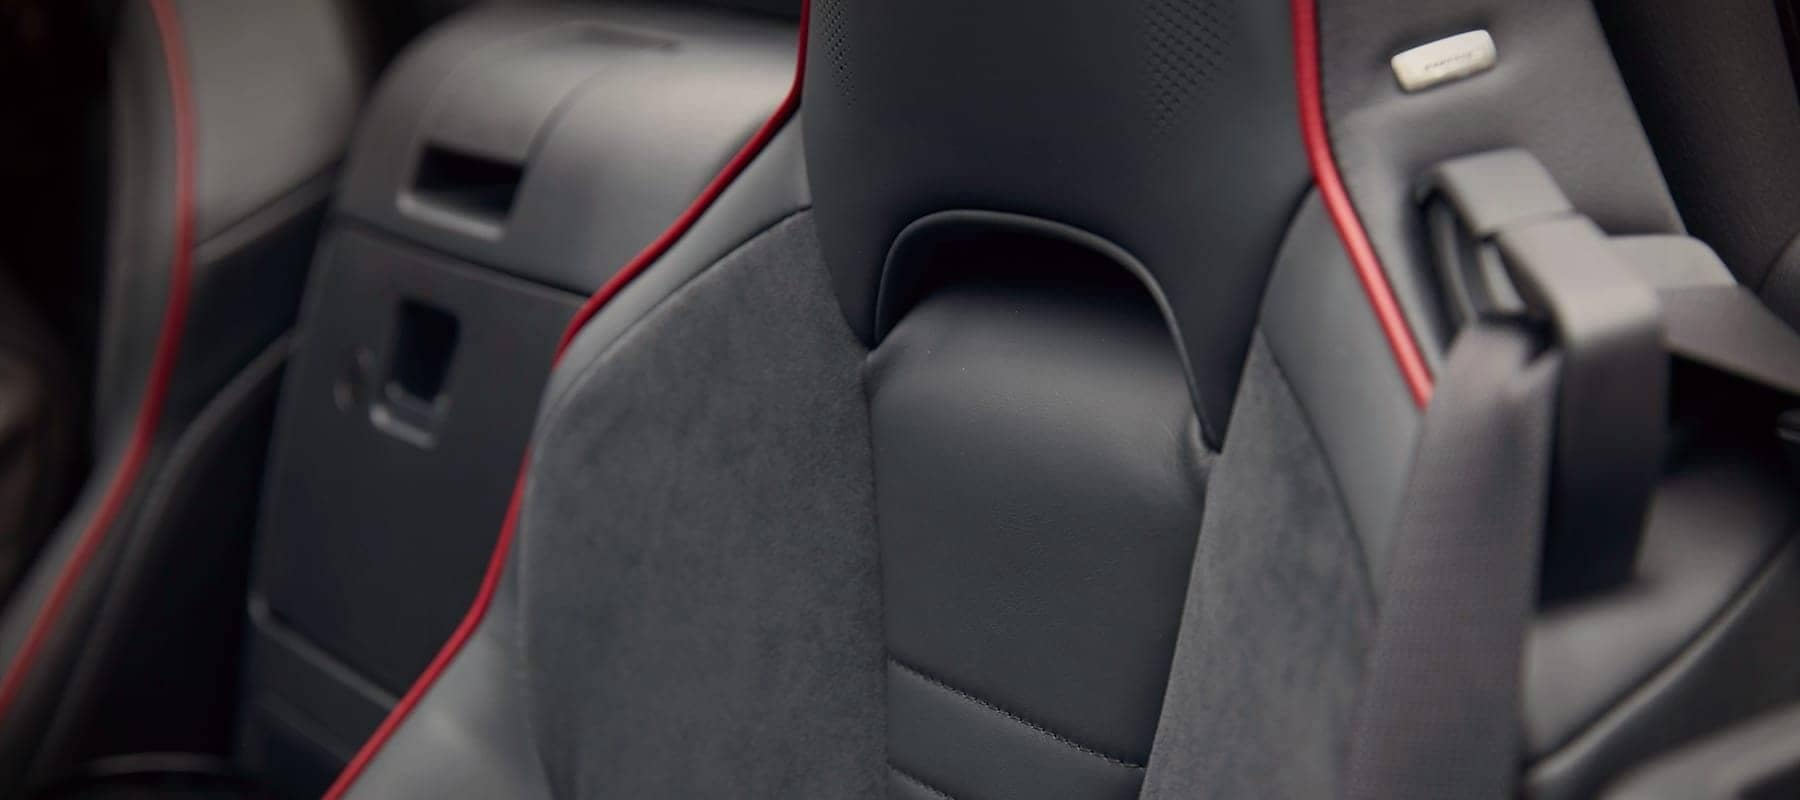 2019-mazda-mx-5-miata-bucket-seats